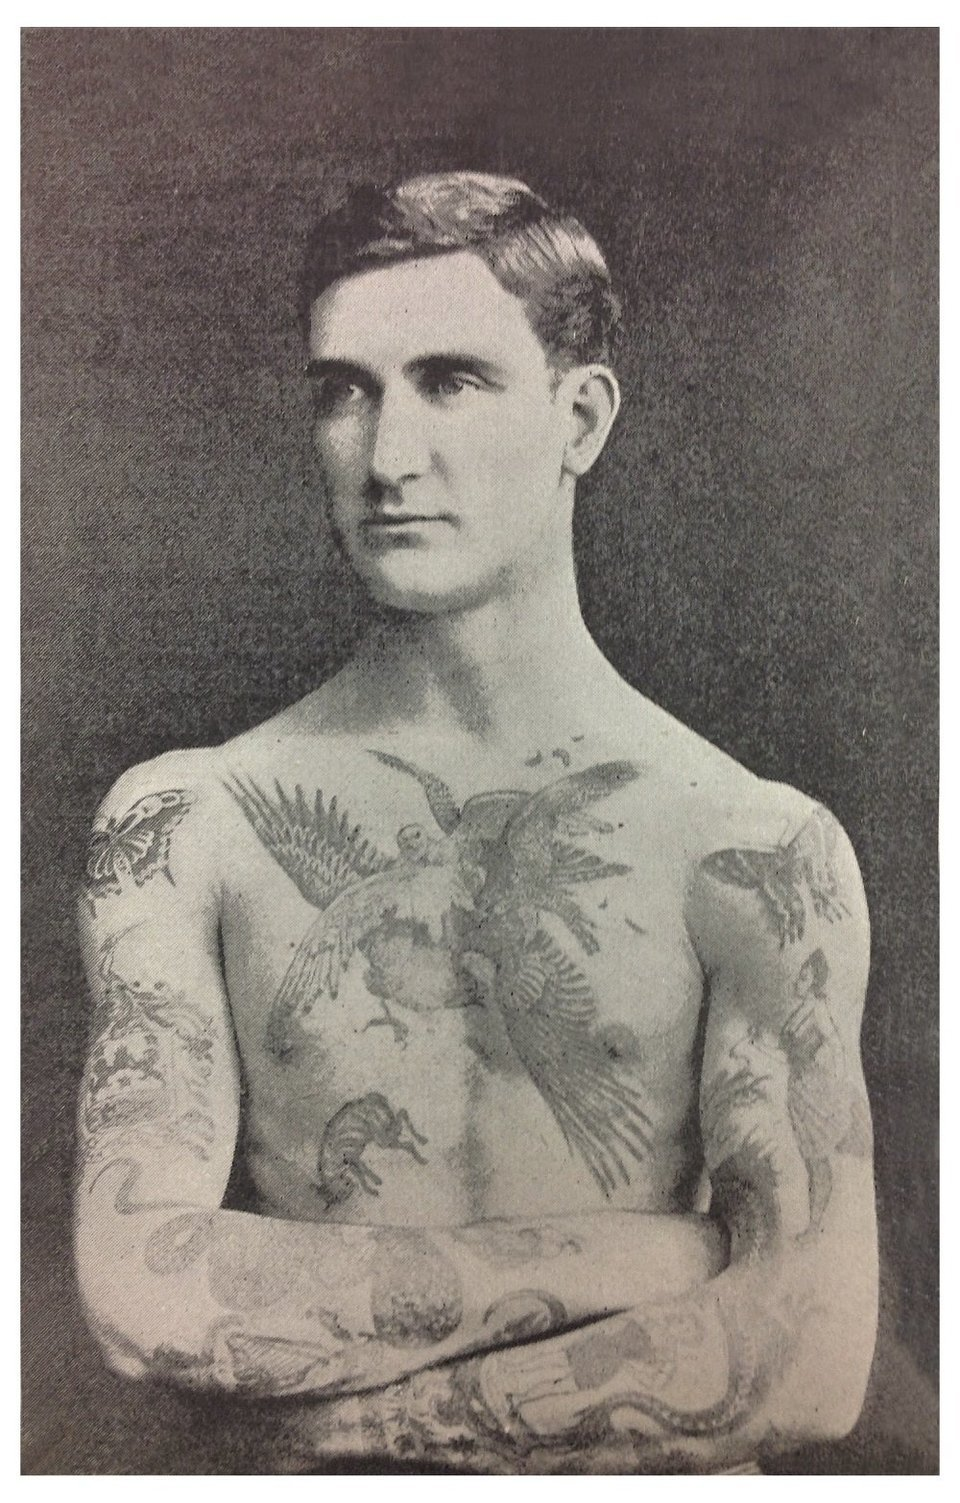 The-World-Atlas-of-Tattoo-Tattoos-by-Sutherland-Macdonald-1890s-credit-Anna-Felicity-Friedman